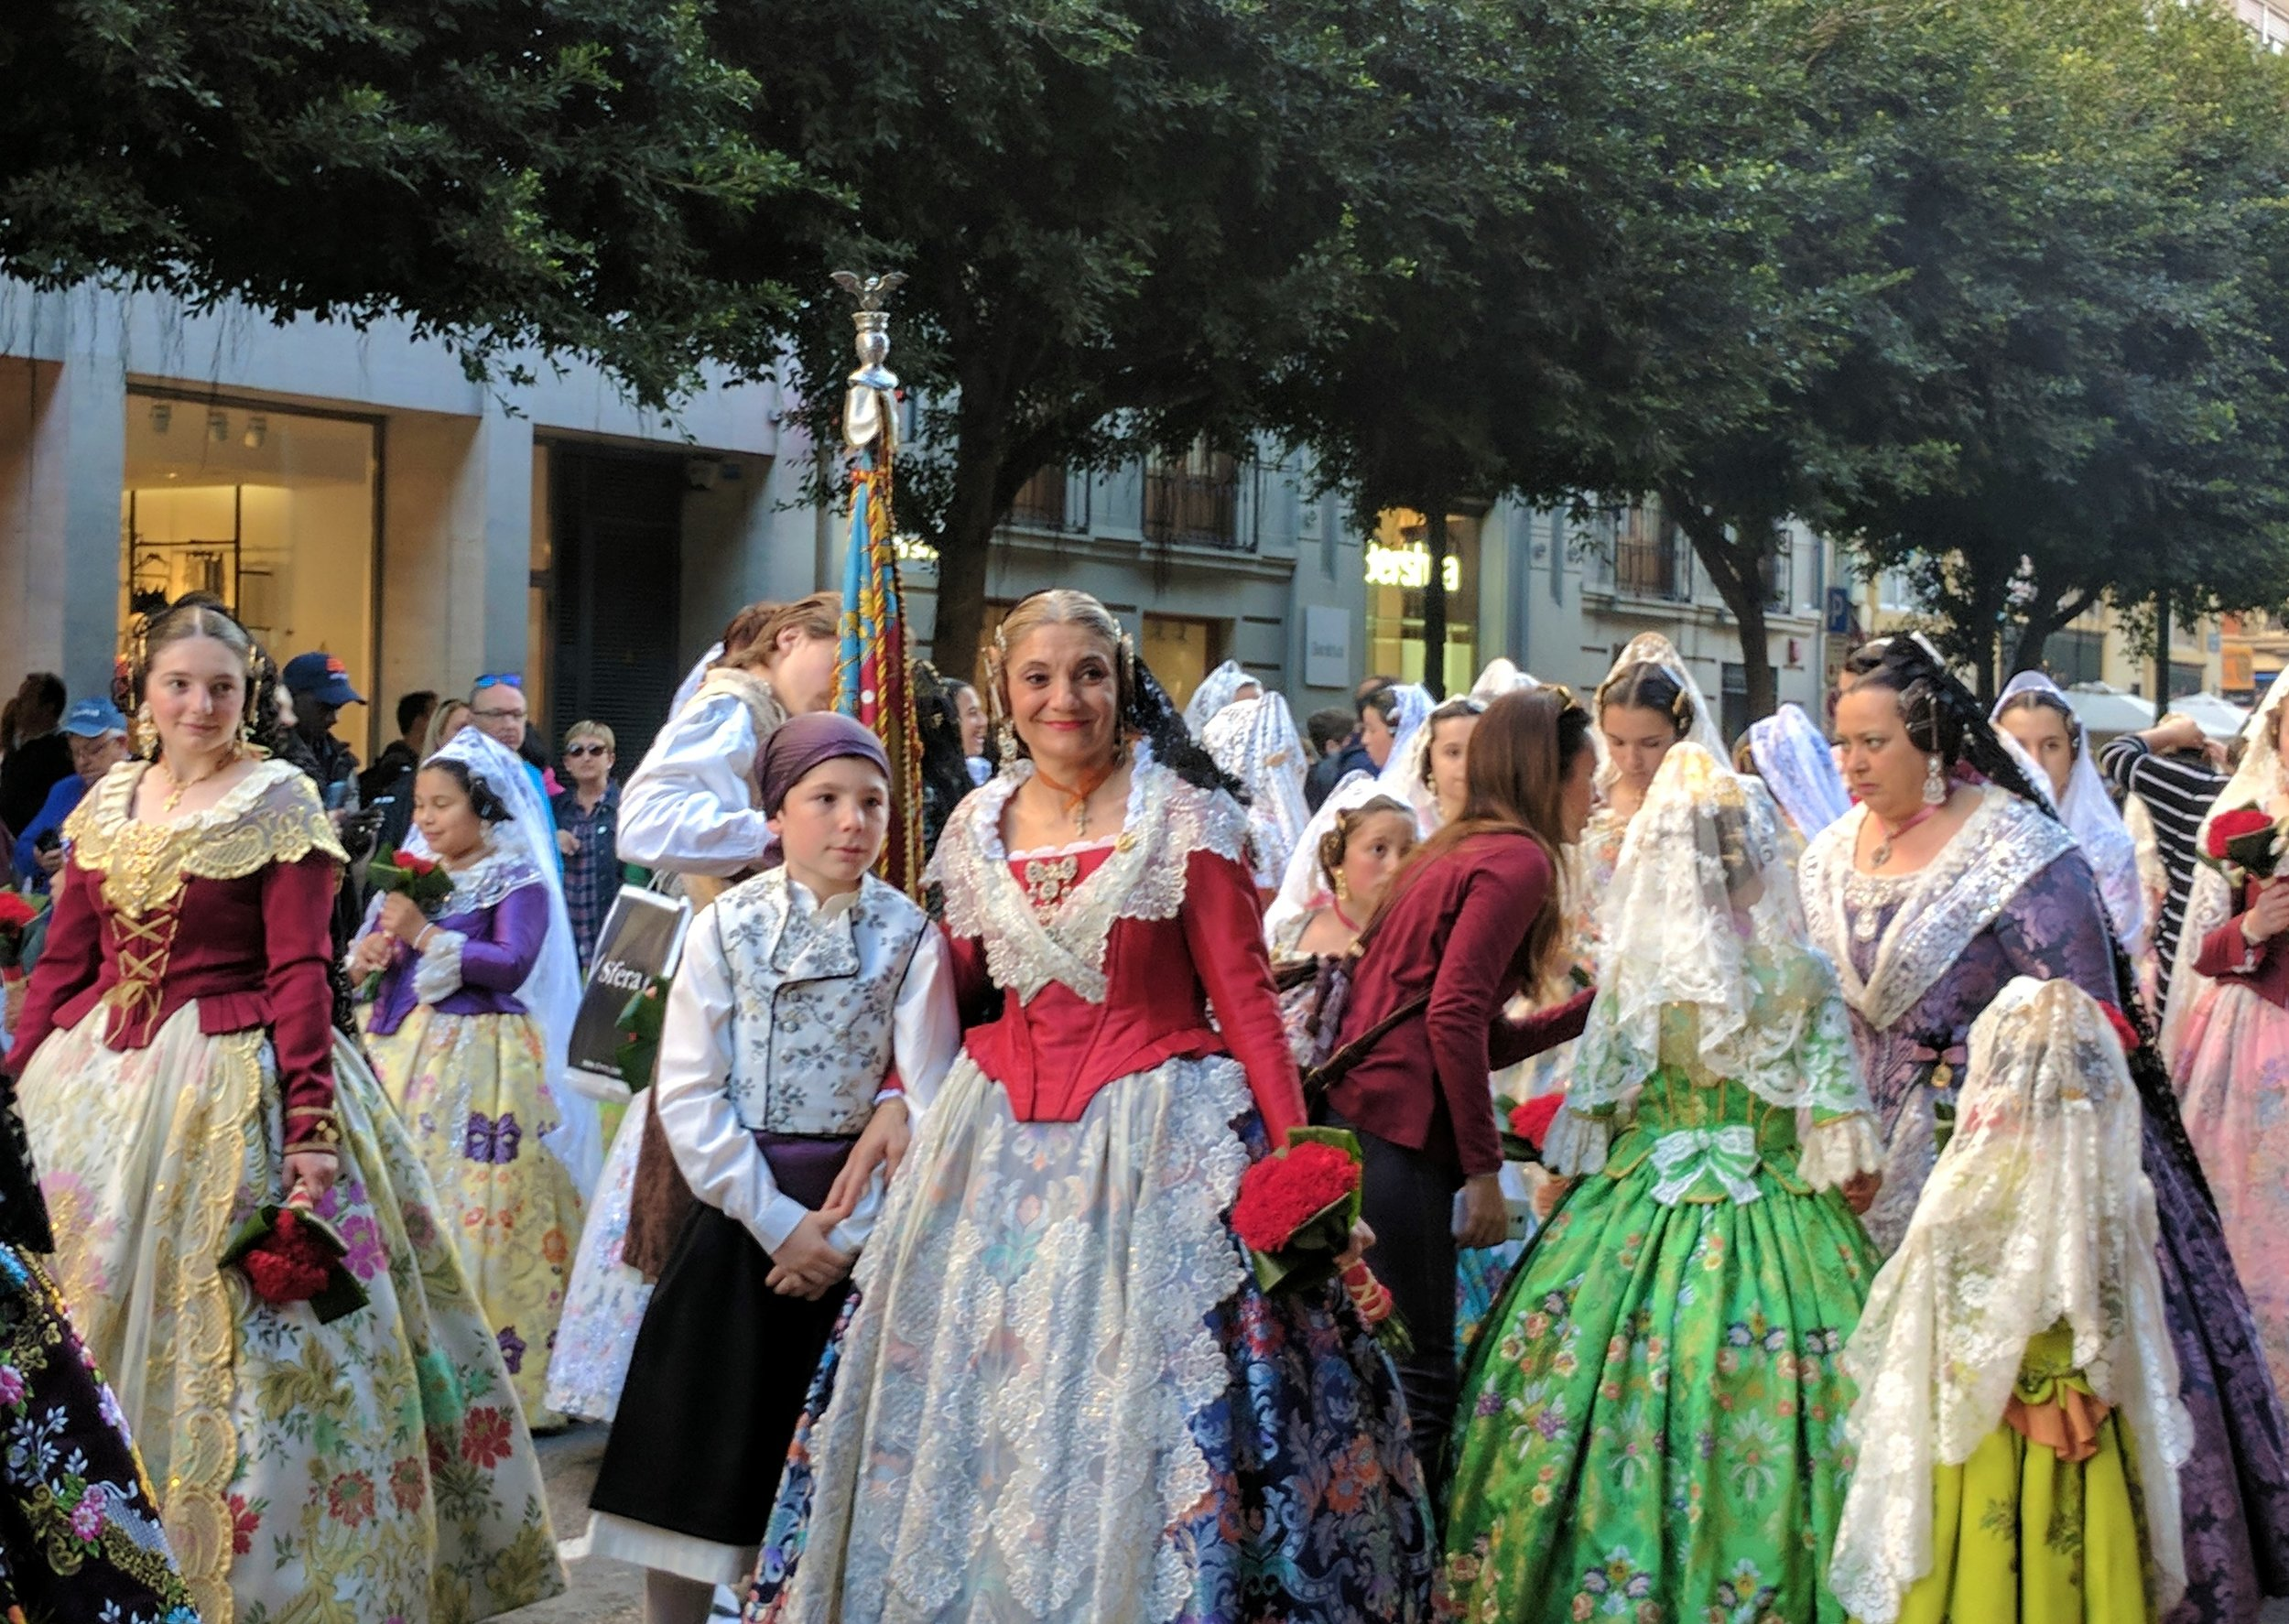 Beautiful traditional dress for the Ofrenda parade